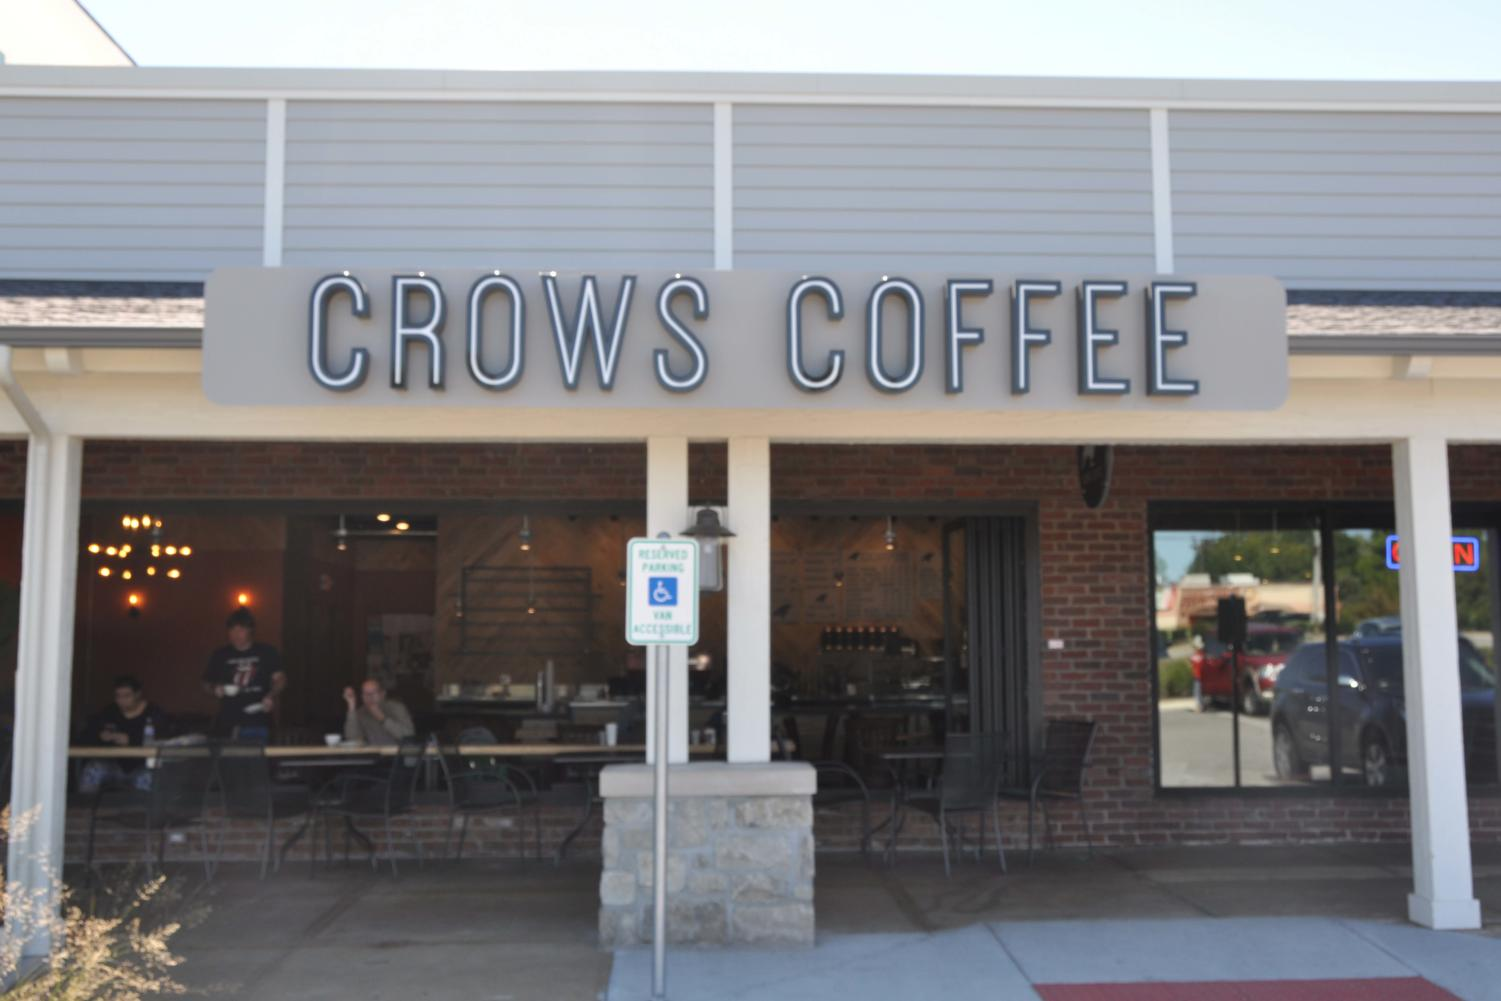 Crow's Coffee's newest location is only three minutes from campus, making it one of the closest coffee shops to school.